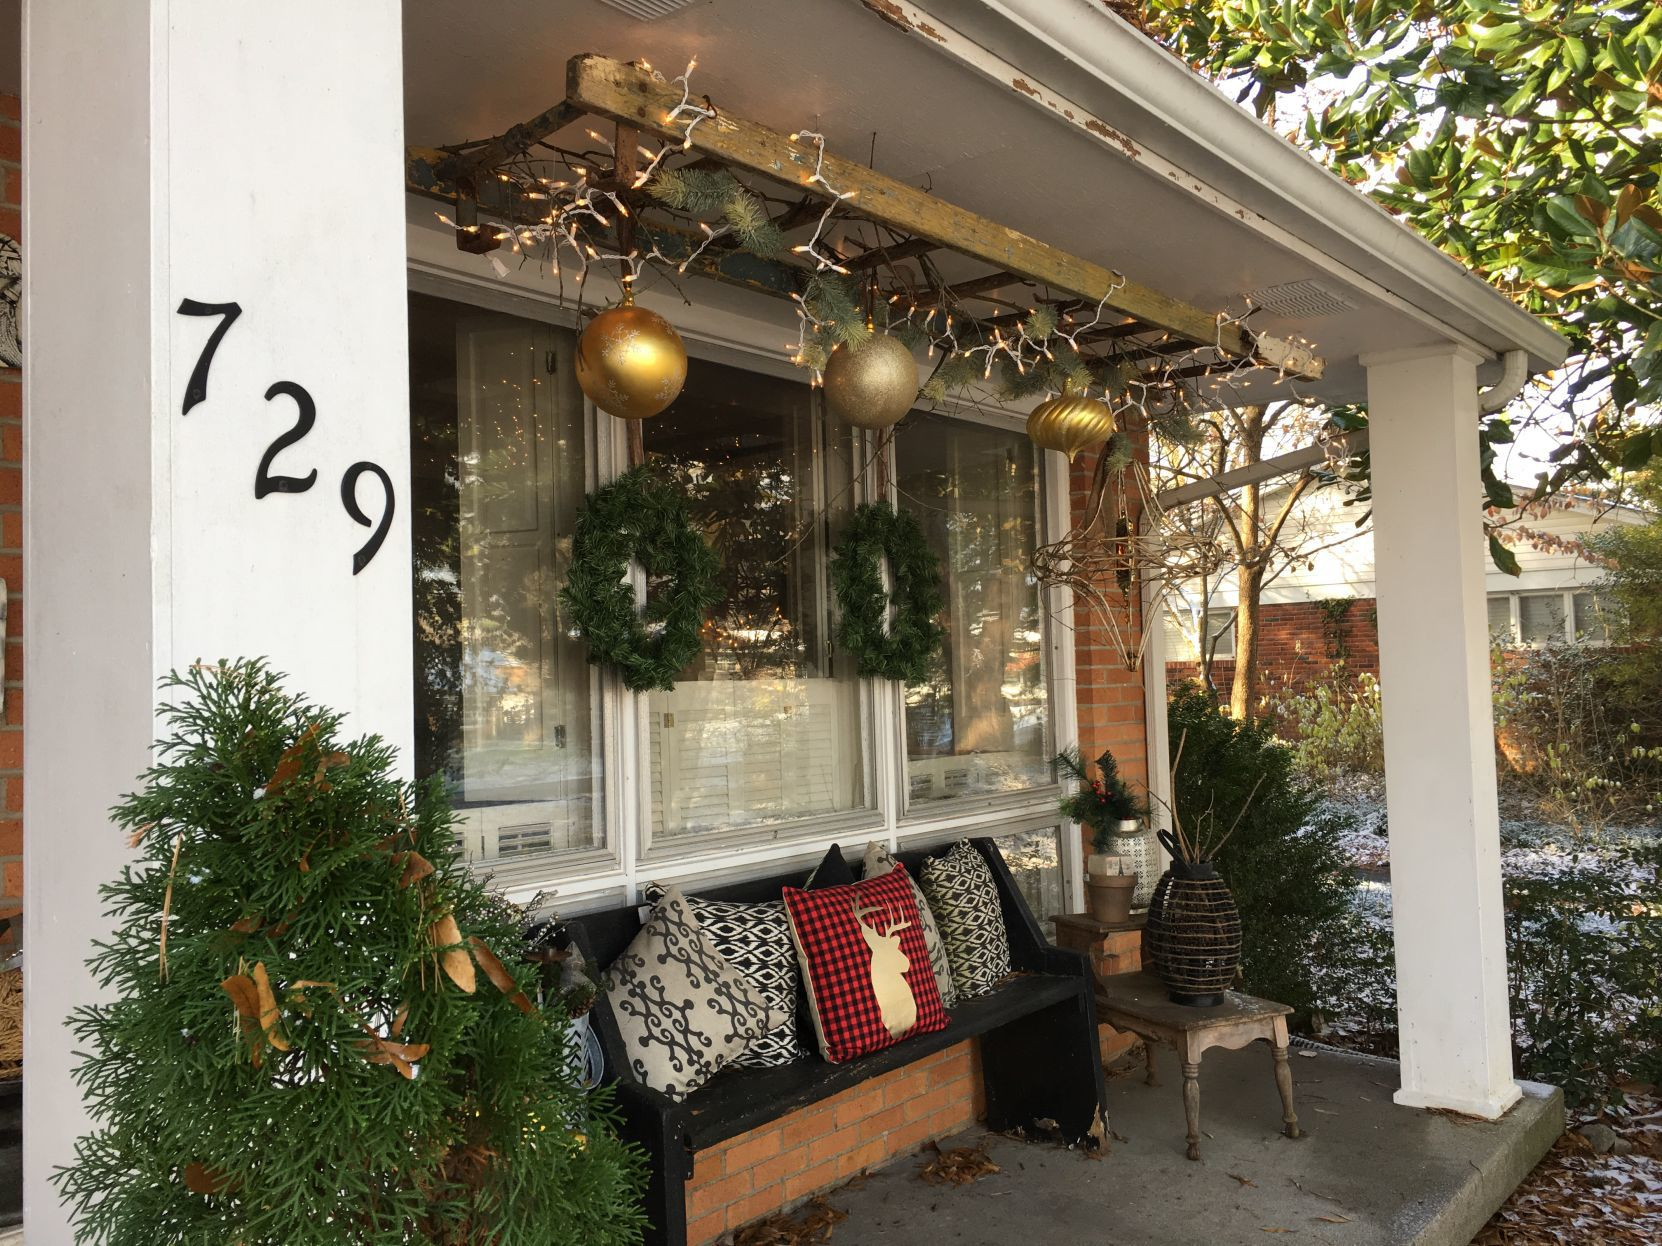 Decorated Homes To Be Featured In Christmas Tour